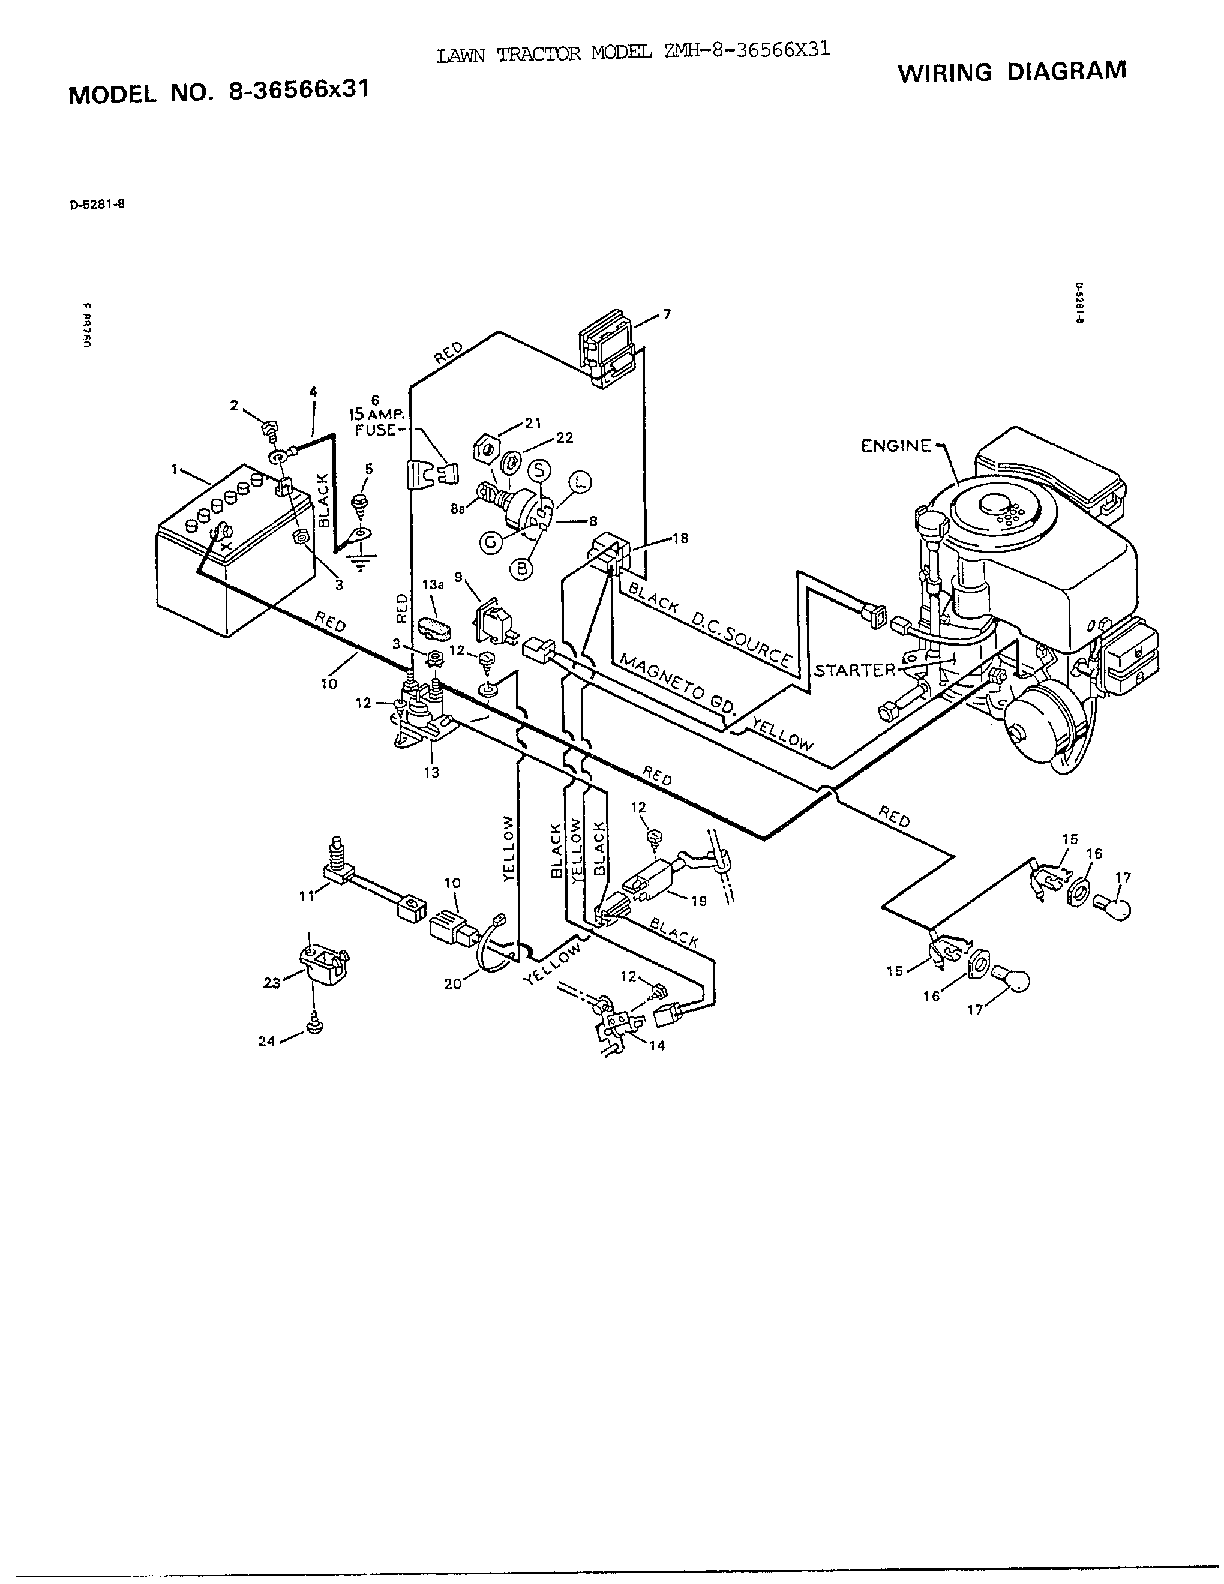 Wiring Diagram Murray Riding Mower: Murray hp inch rear